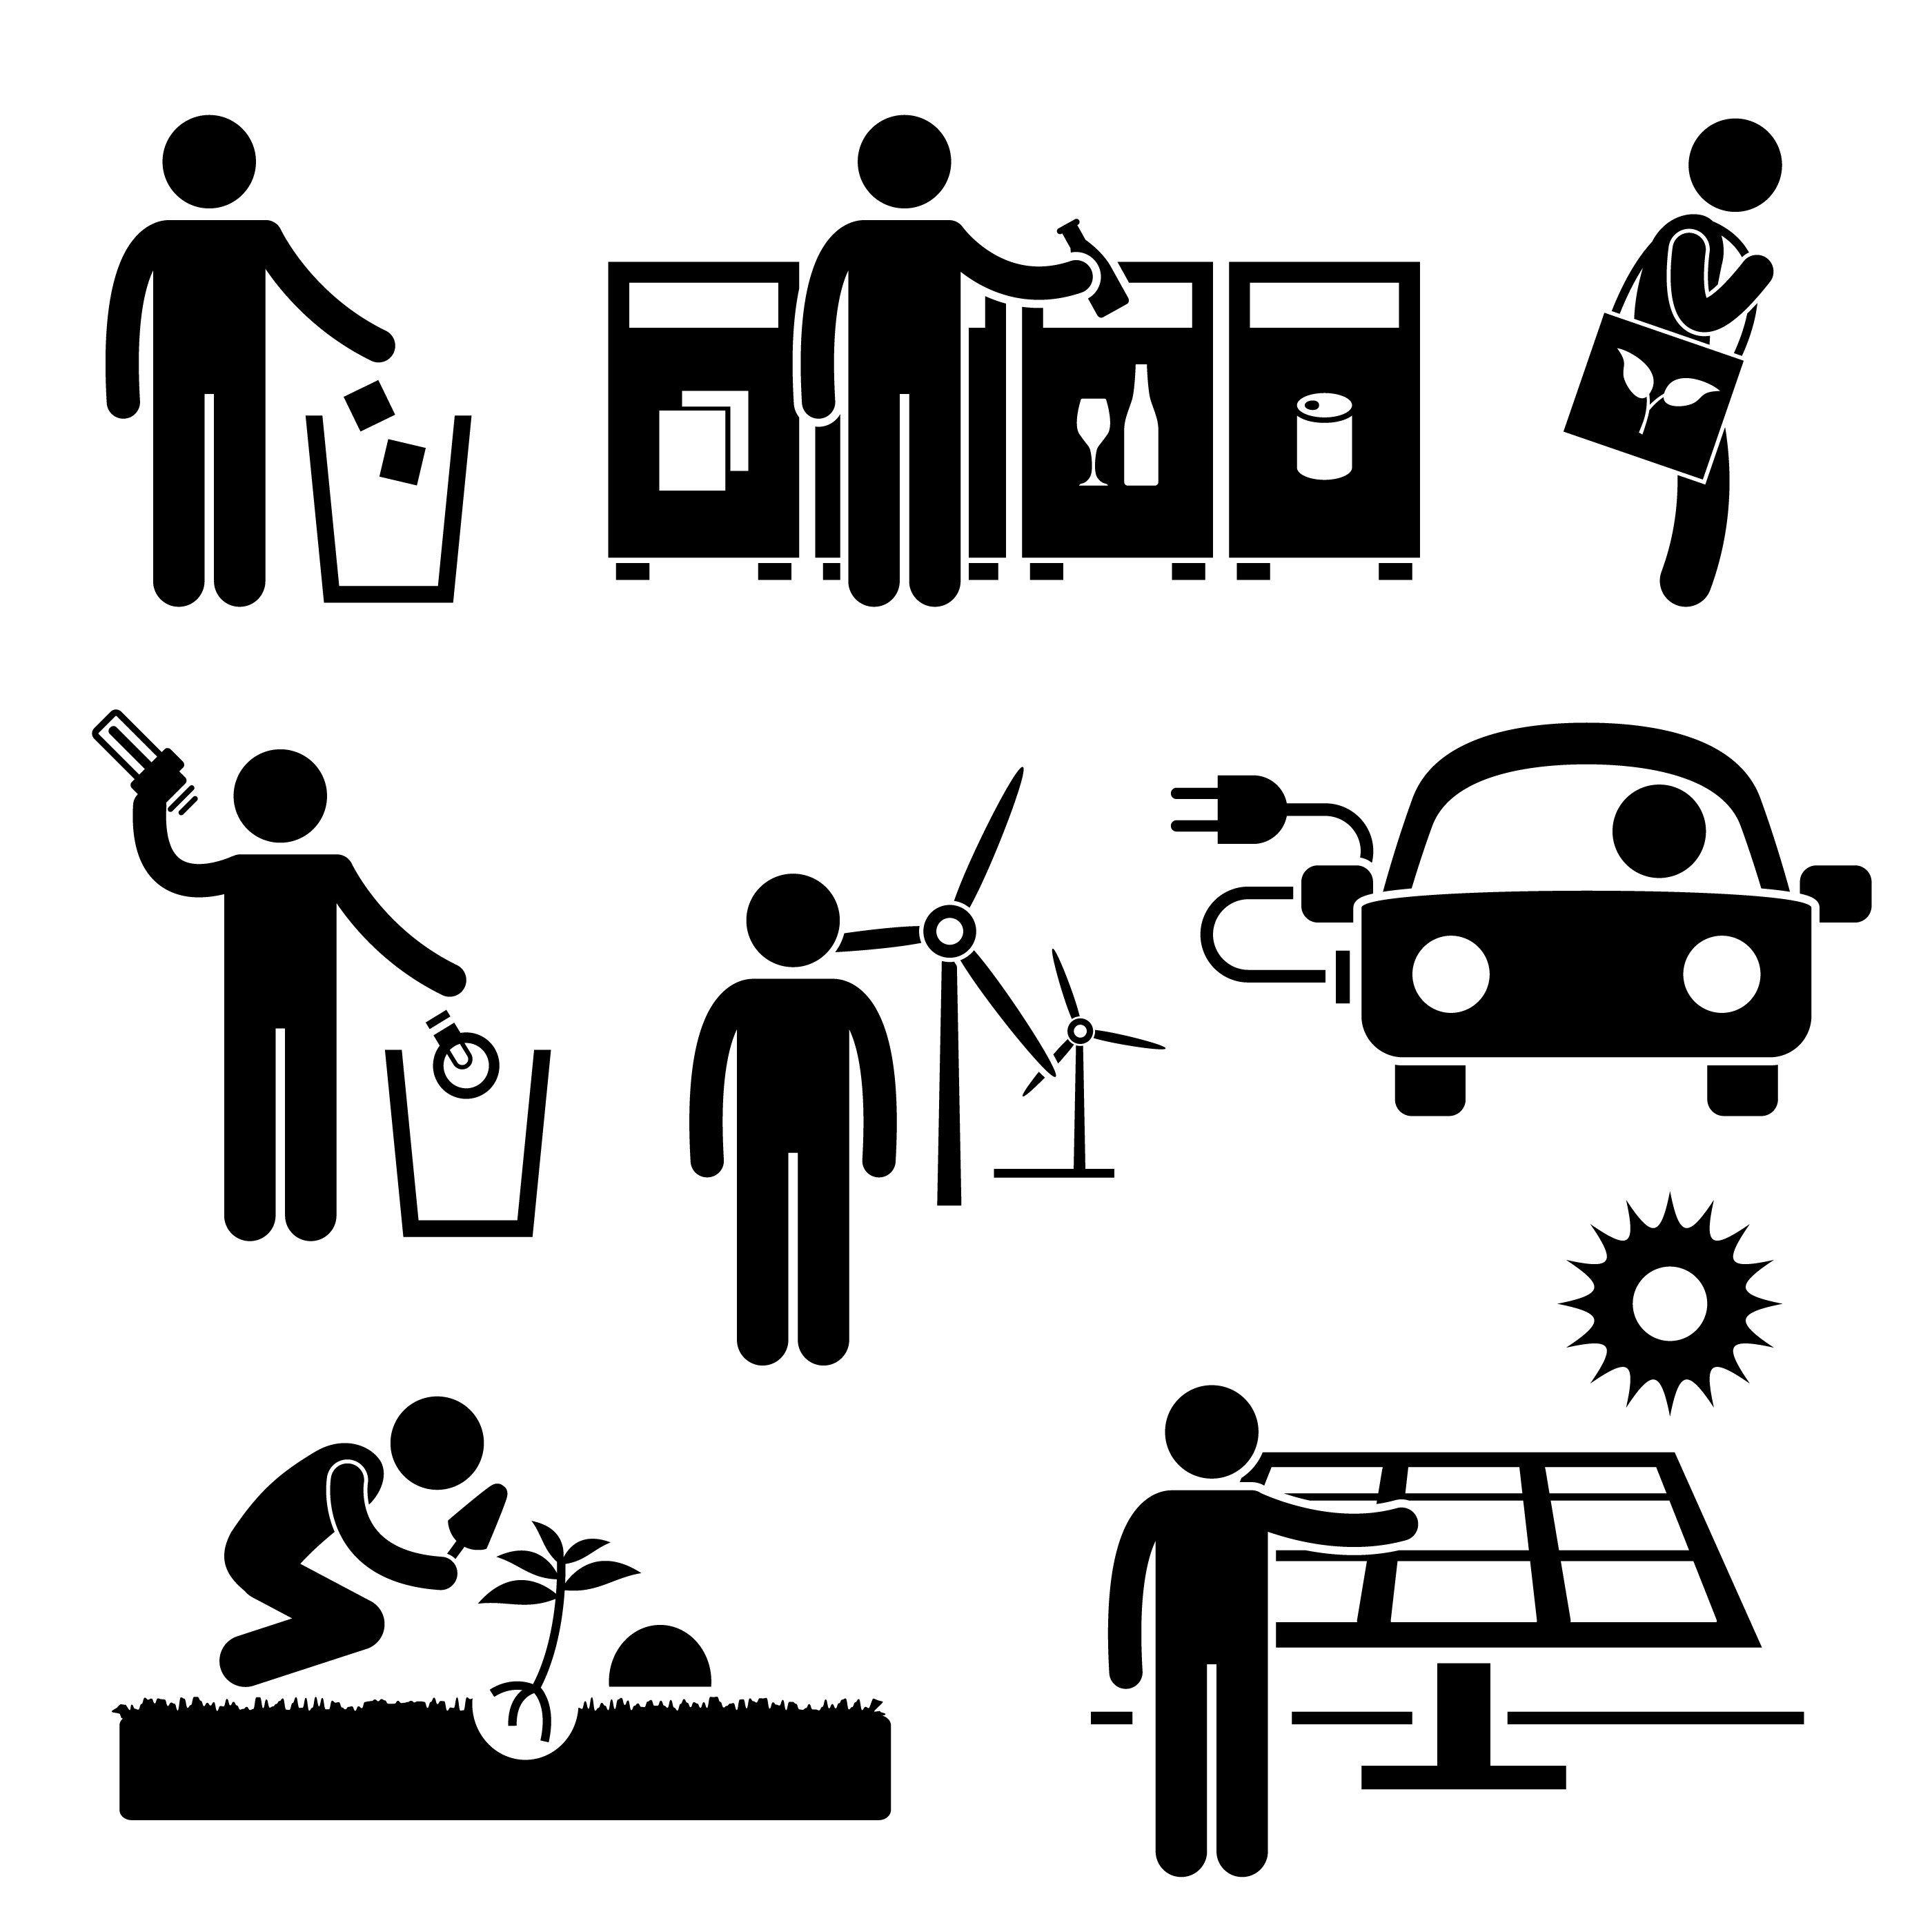 Man Recycle Green Energy Clean Environment Energy Saving Etsy In 2021 Pictogram Recycling Save Energy